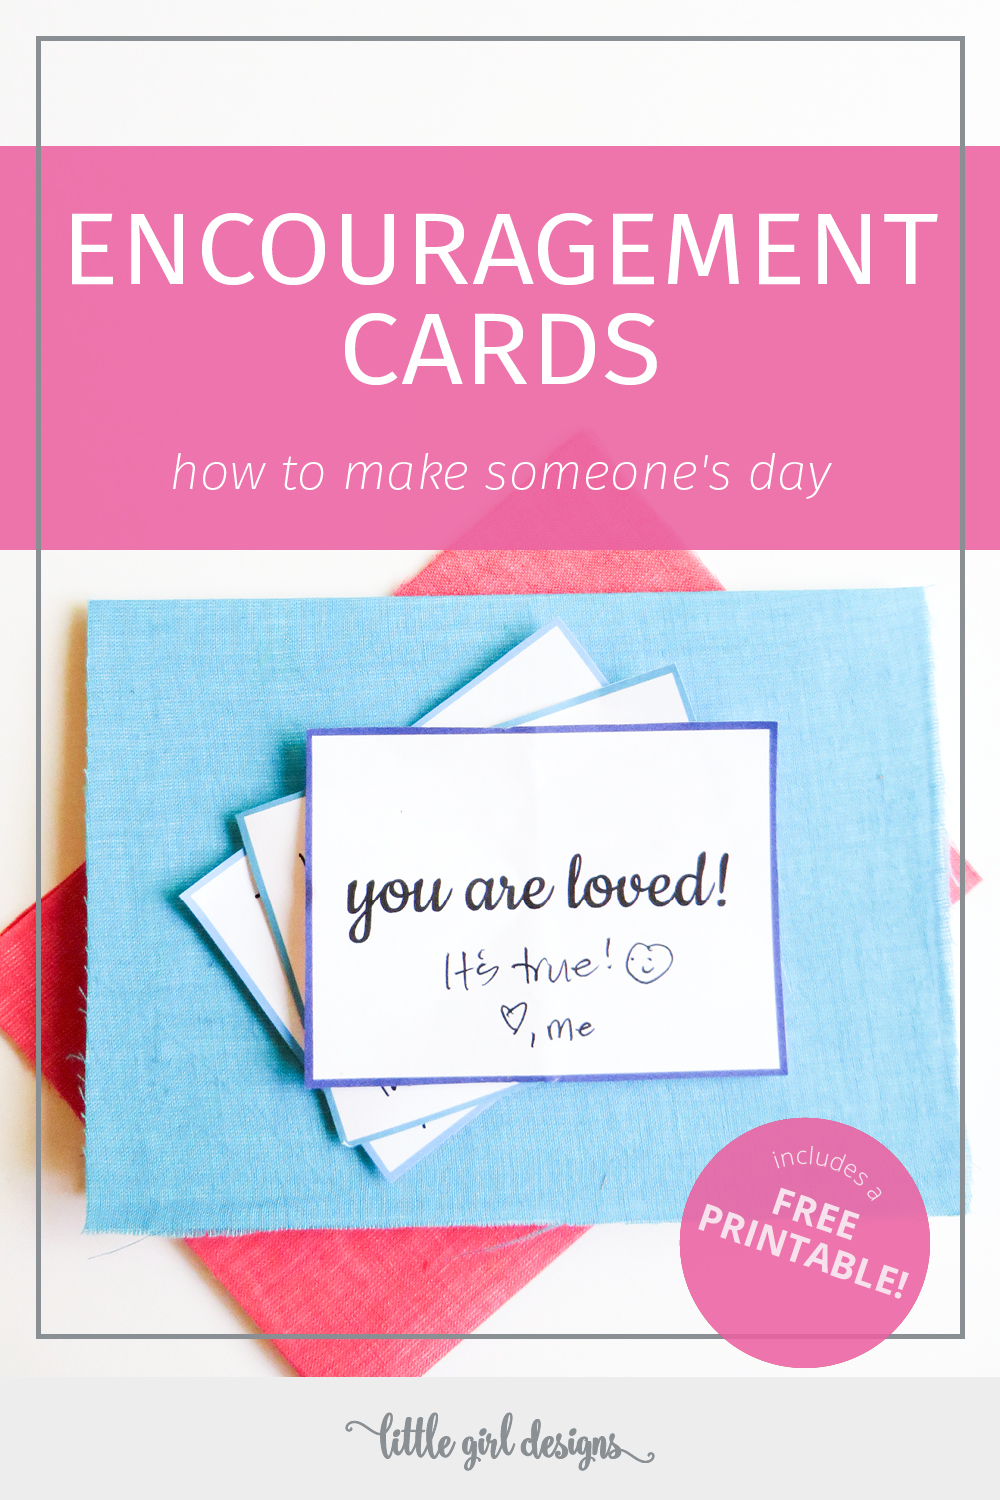 Handy image in printable encouragement cards